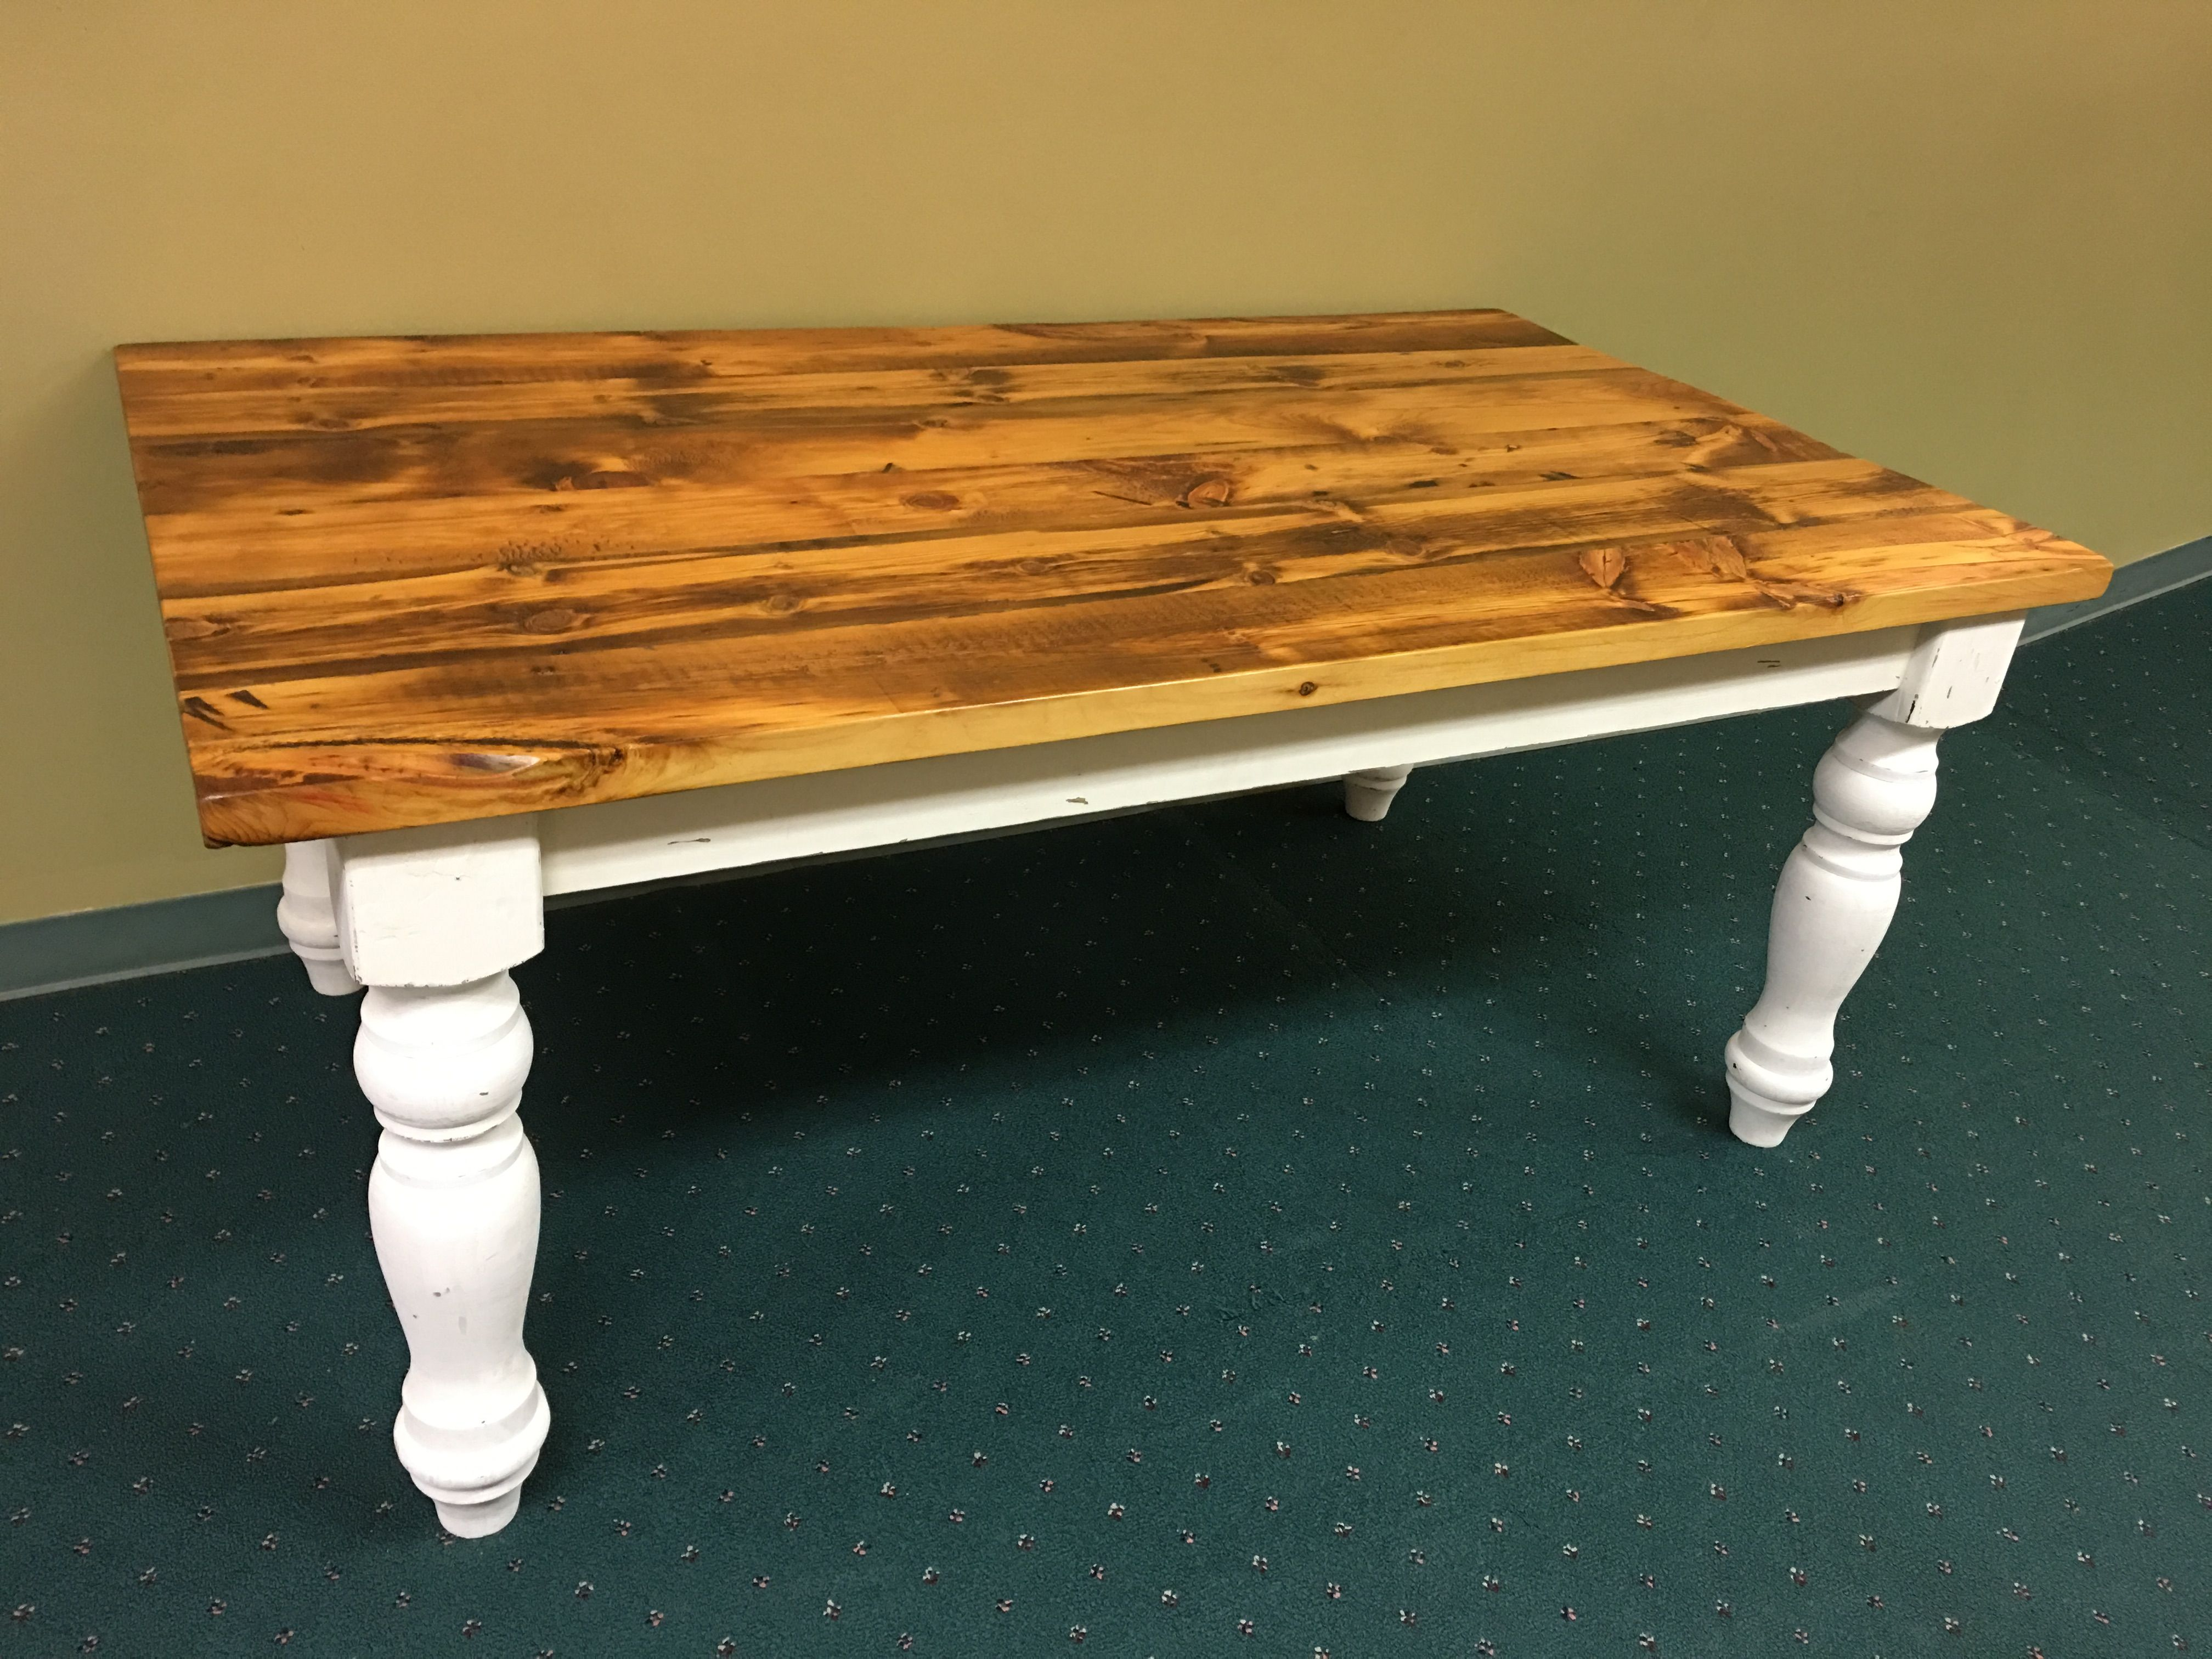 reclaimed pine farmhouse farm table turned legs distressed on fantastic repurposed furniture projects ideas in time for father s day id=82964